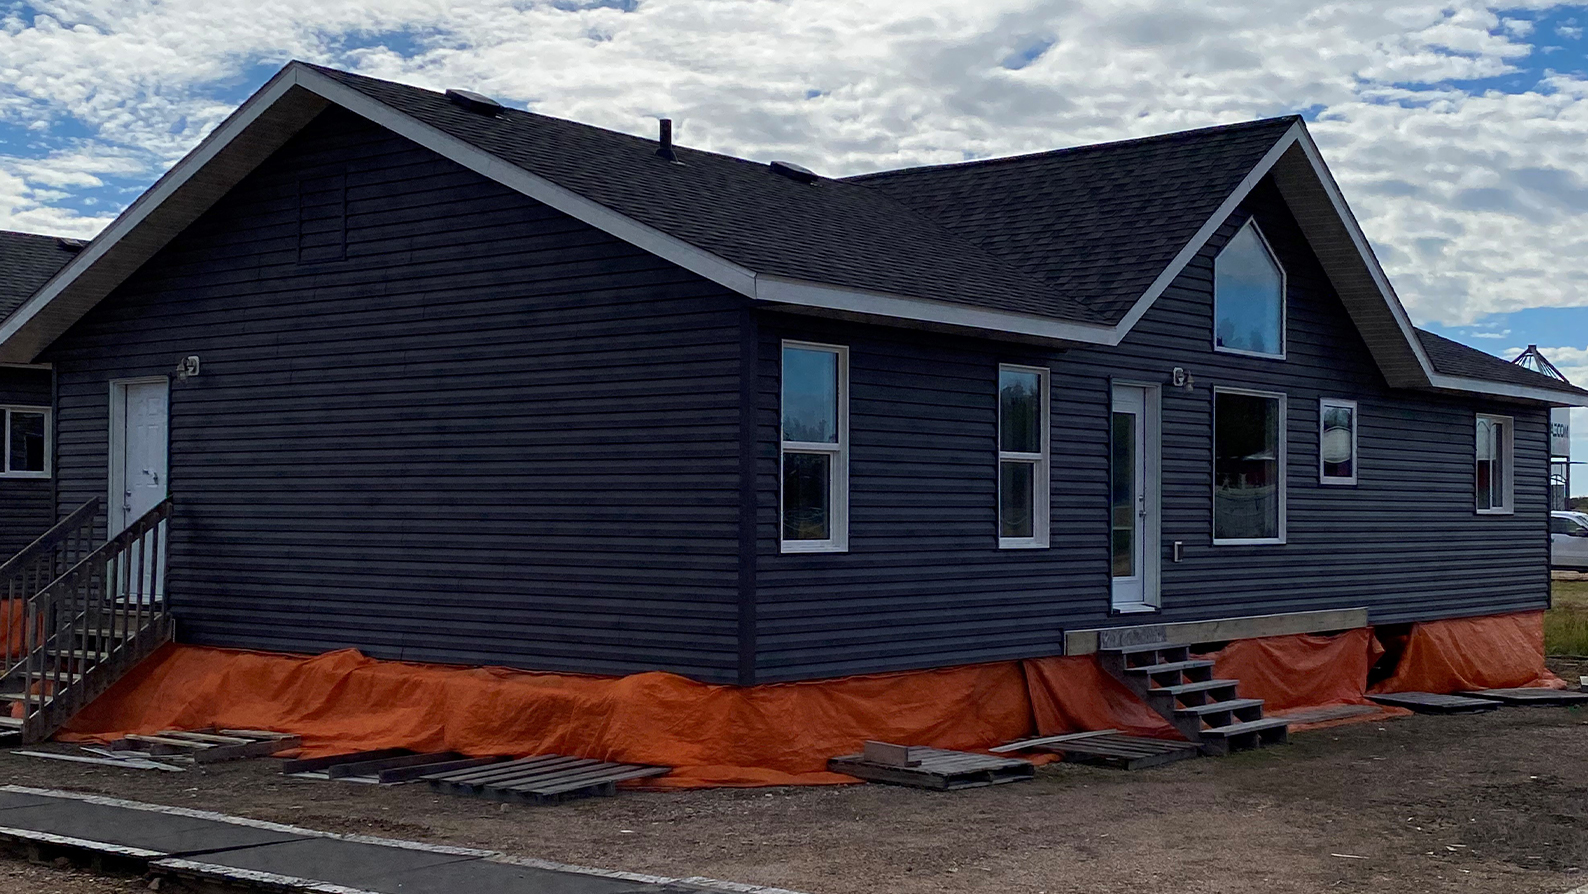 Home in Cold Lake: Cenovus Indigenous Housing Initiative